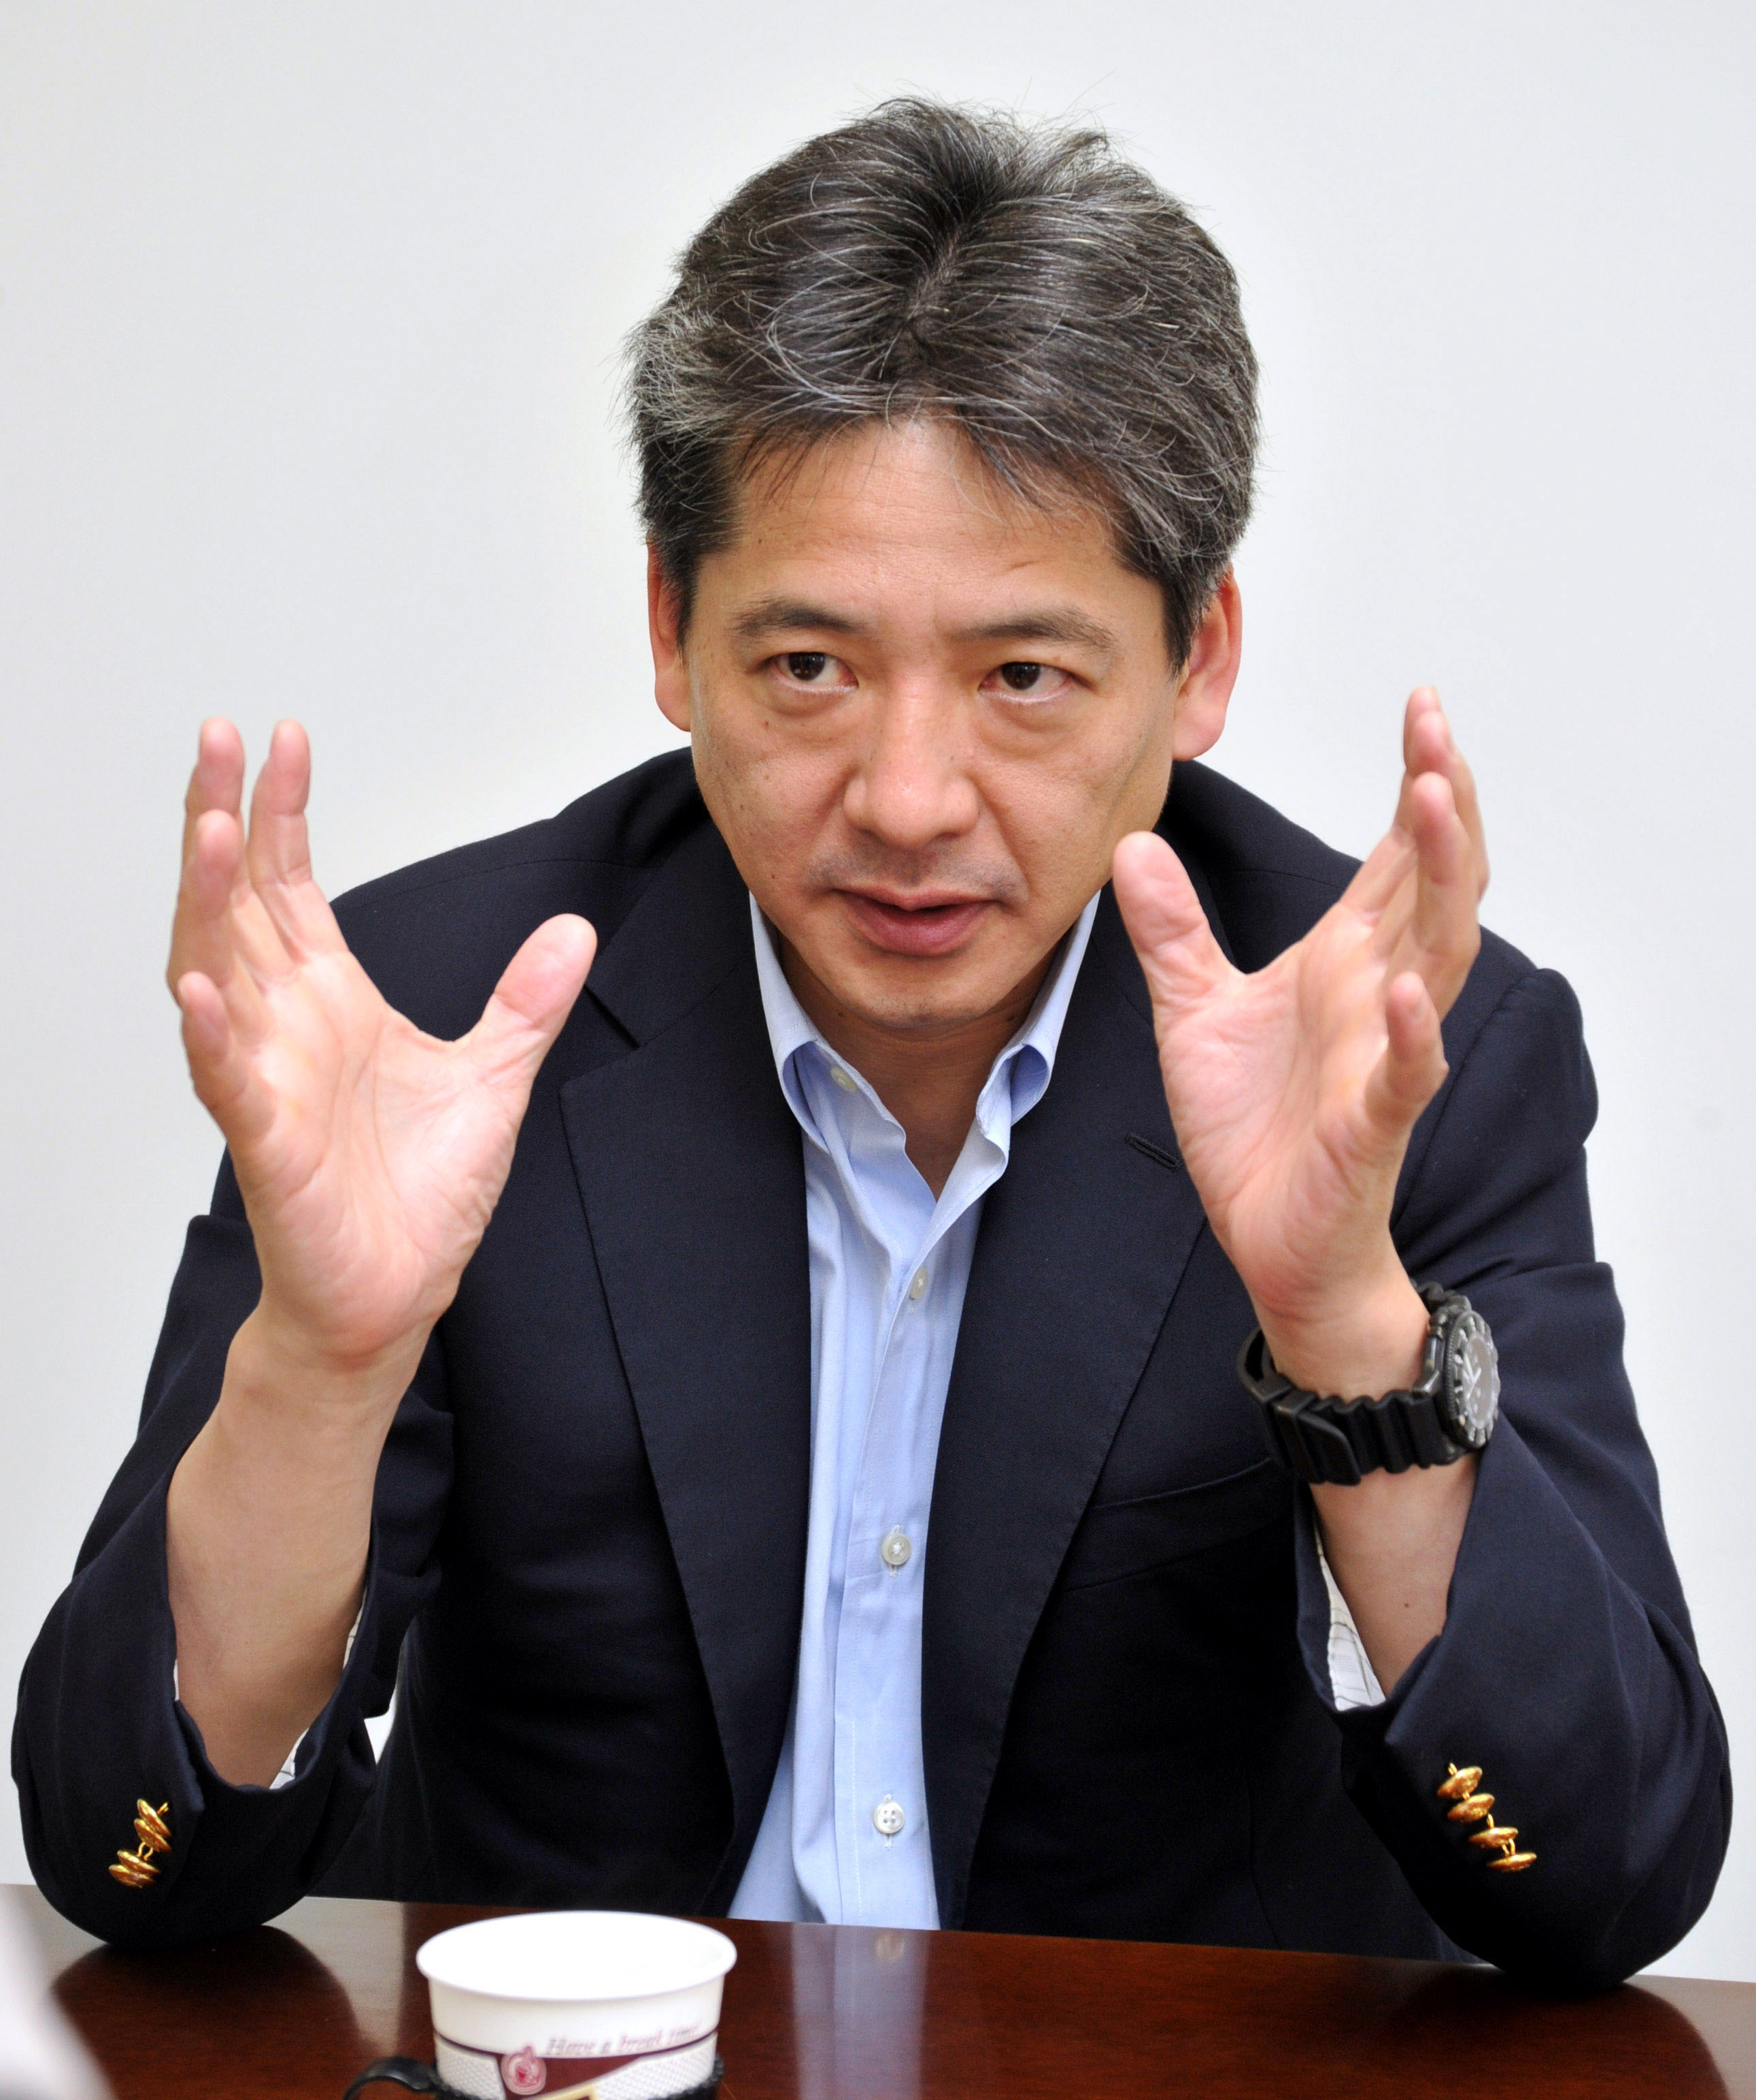 Transmitting data: Joji Kitano, president and CEO of e-Parcel Corp., is interviewed at the firm's office in Chiyoda Ward,  Tokyo, earlier this month. | YOSHIAKI MIURA